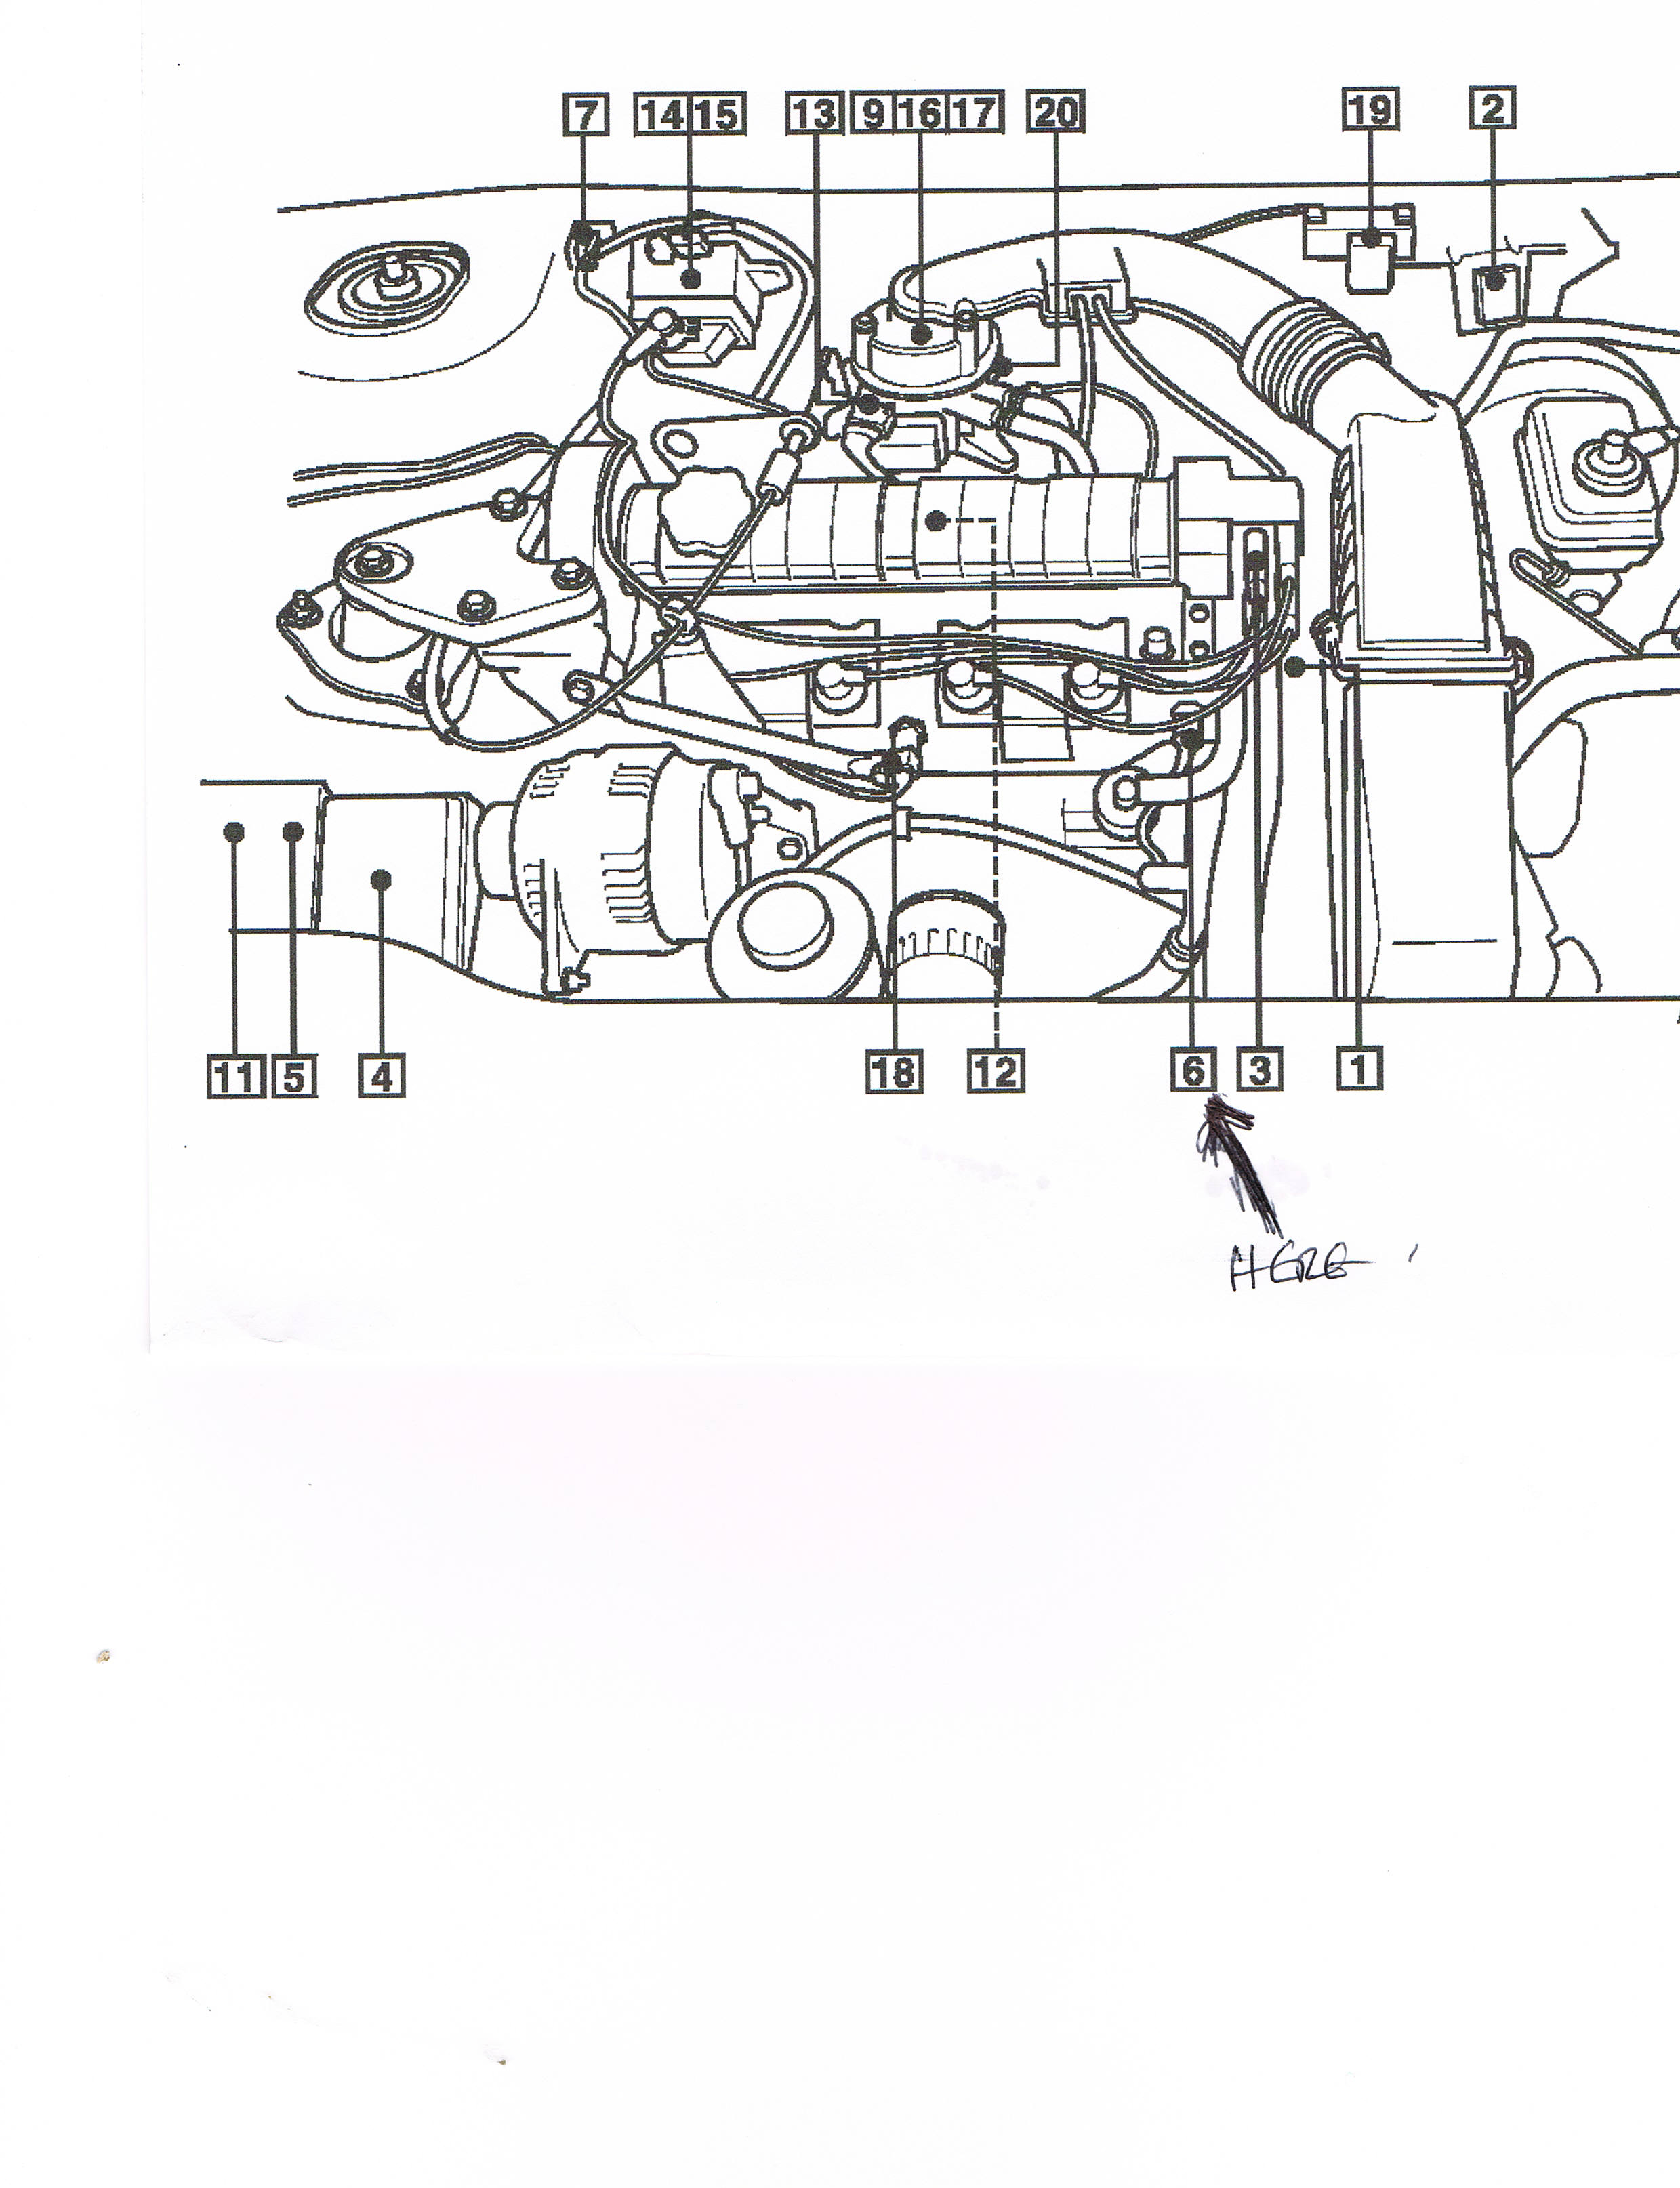 Mazda 2 Airbag Wiring Diagram : Mazda miata wiring diagram imageresizertool